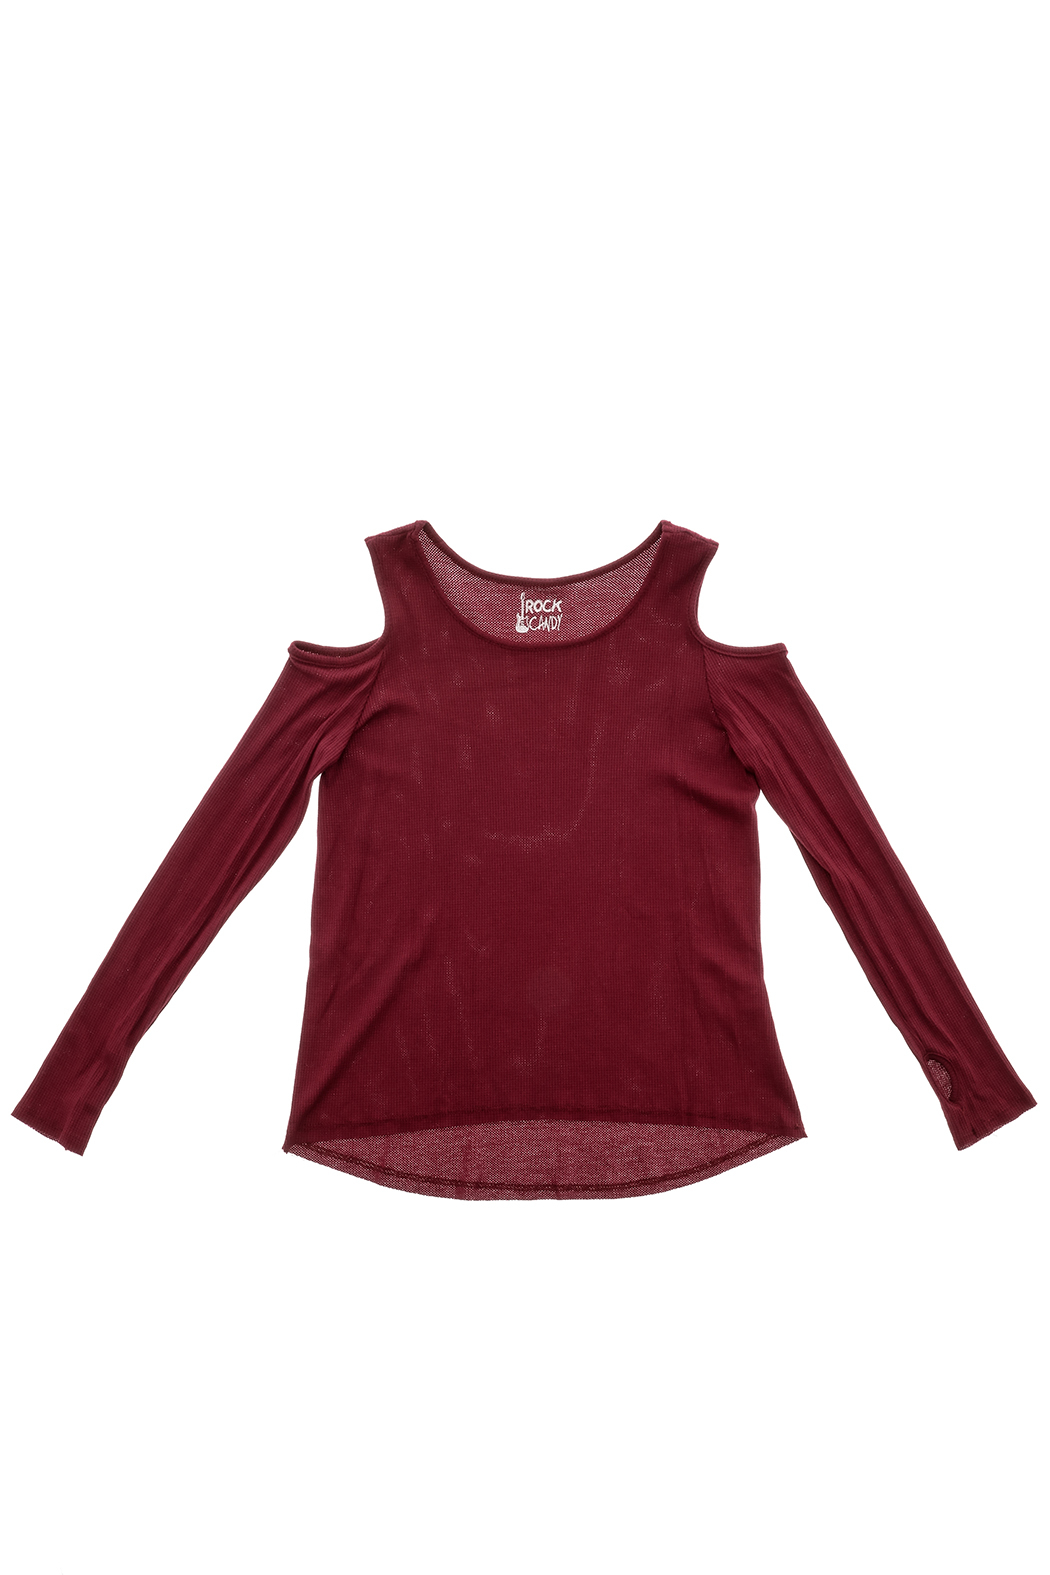 Rock Candy Cold Shoulder Thermal Top - Front Cropped Image